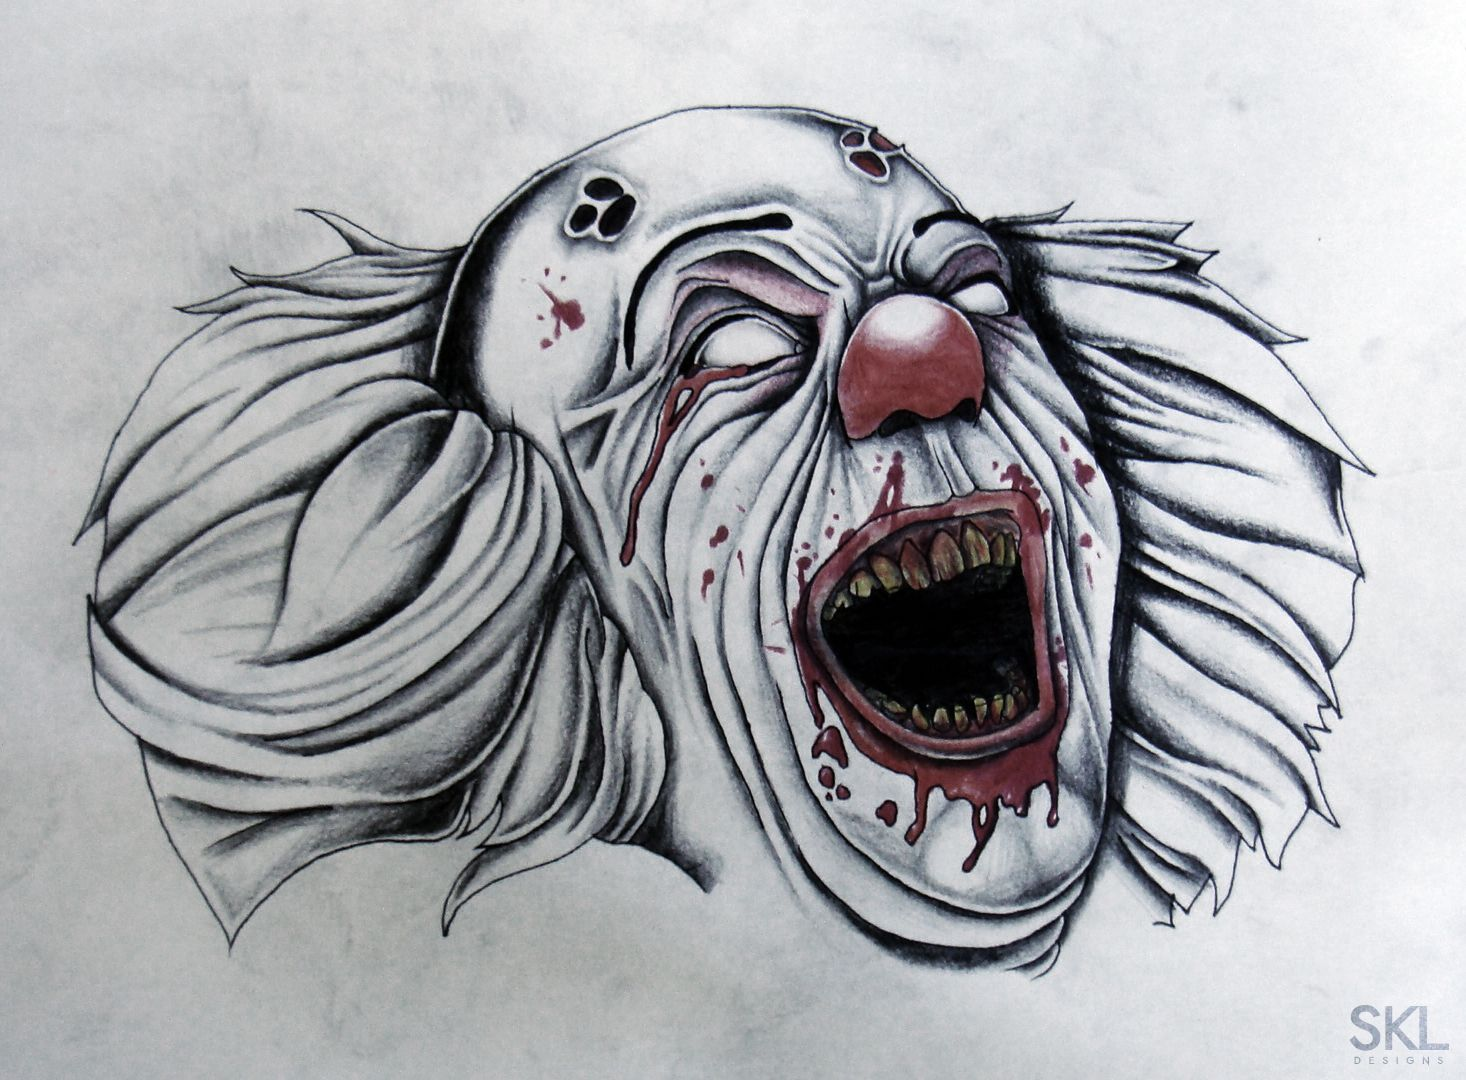 How to draw horror movie characters drawings illustrations skldesigns